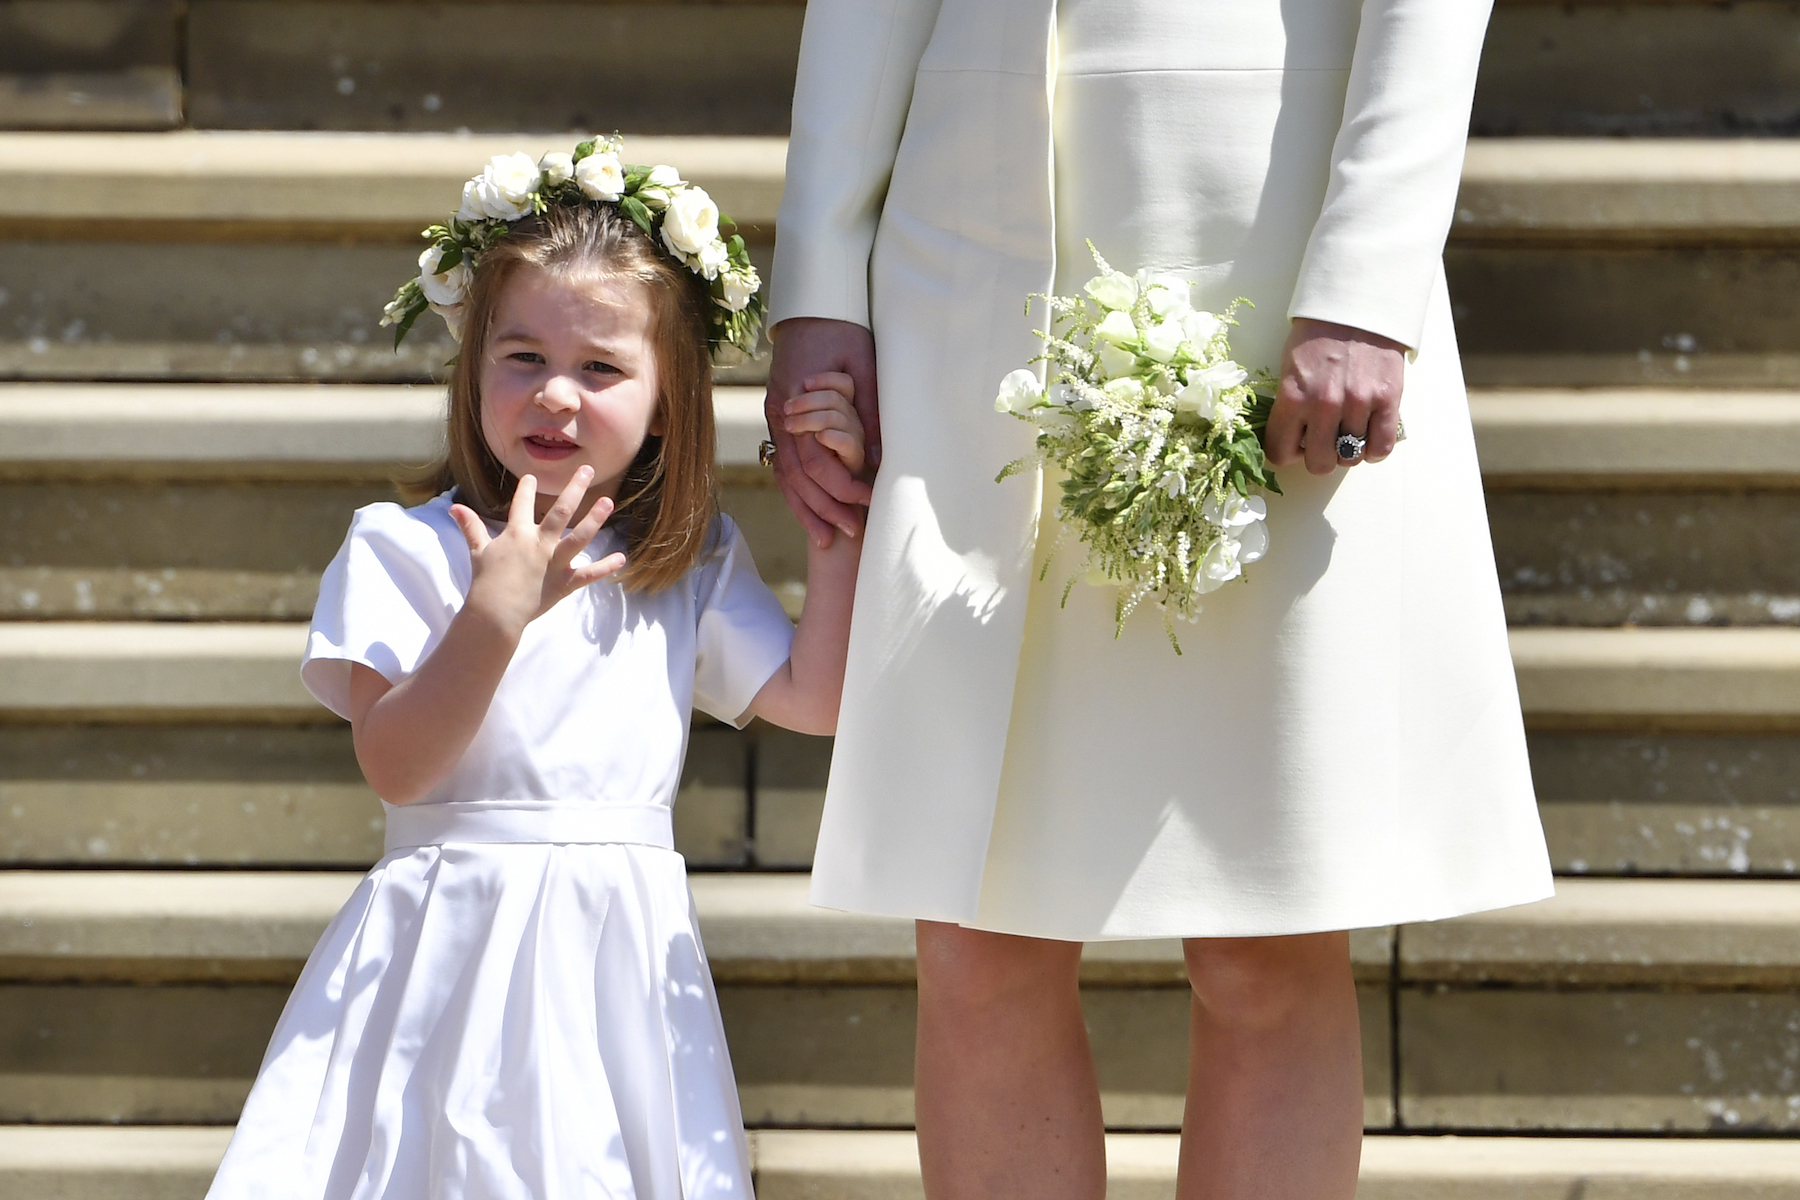 <div class='meta'><div class='origin-logo' data-origin='AP'></div><span class='caption-text' data-credit='Ben Stansall/pool photo via AP'>Britain's Princess Charlotte holds the hand of her mother Kate, Duchess of Cambridge after the wedding ceremony of Prince Harry and Meghan Markle .</span></div>